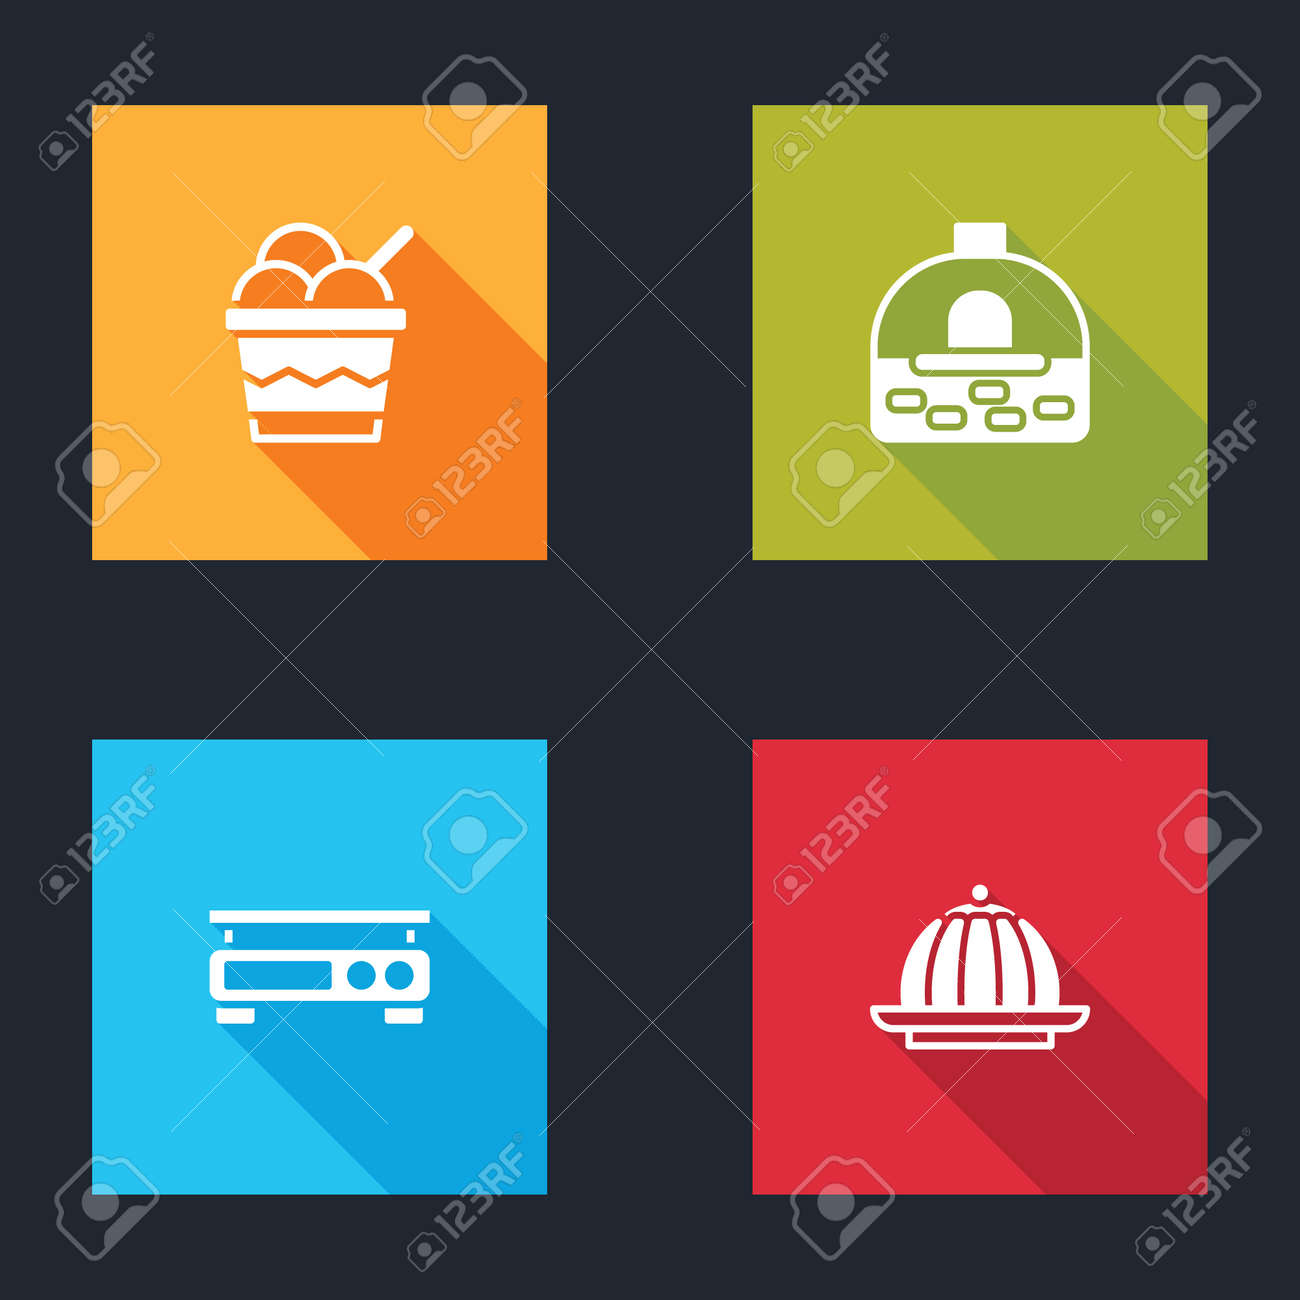 Set Ice cream in bowl, Brick stove, Electronic scales and Pudding custard icon. Vector - 162376568